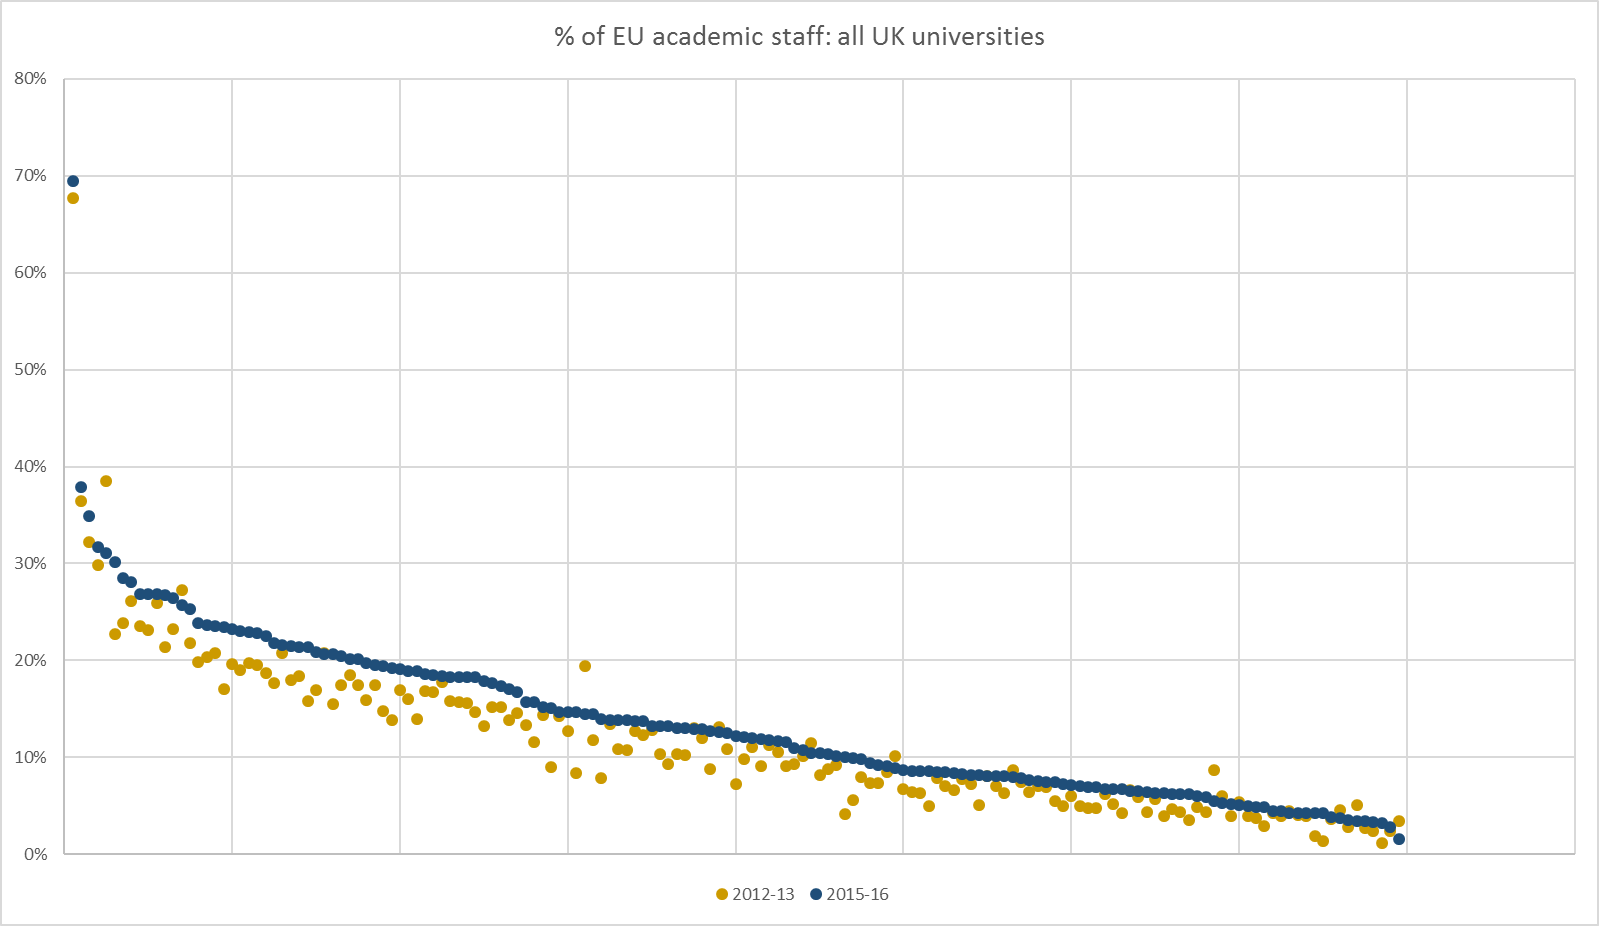 % of EU academic staff: all UK universities